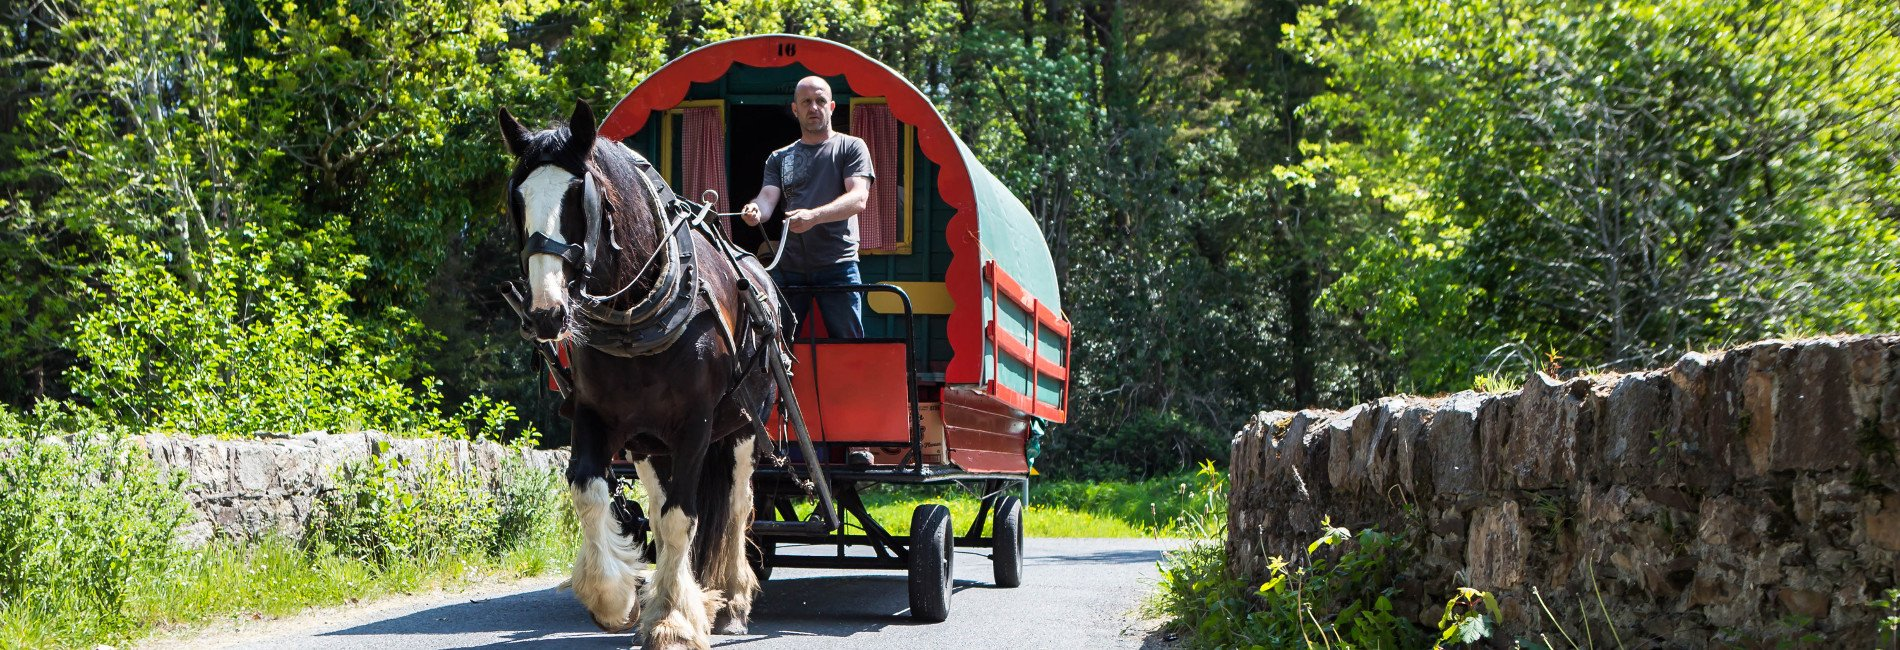 Drive your own caravan on our exclusive horse caravan trips